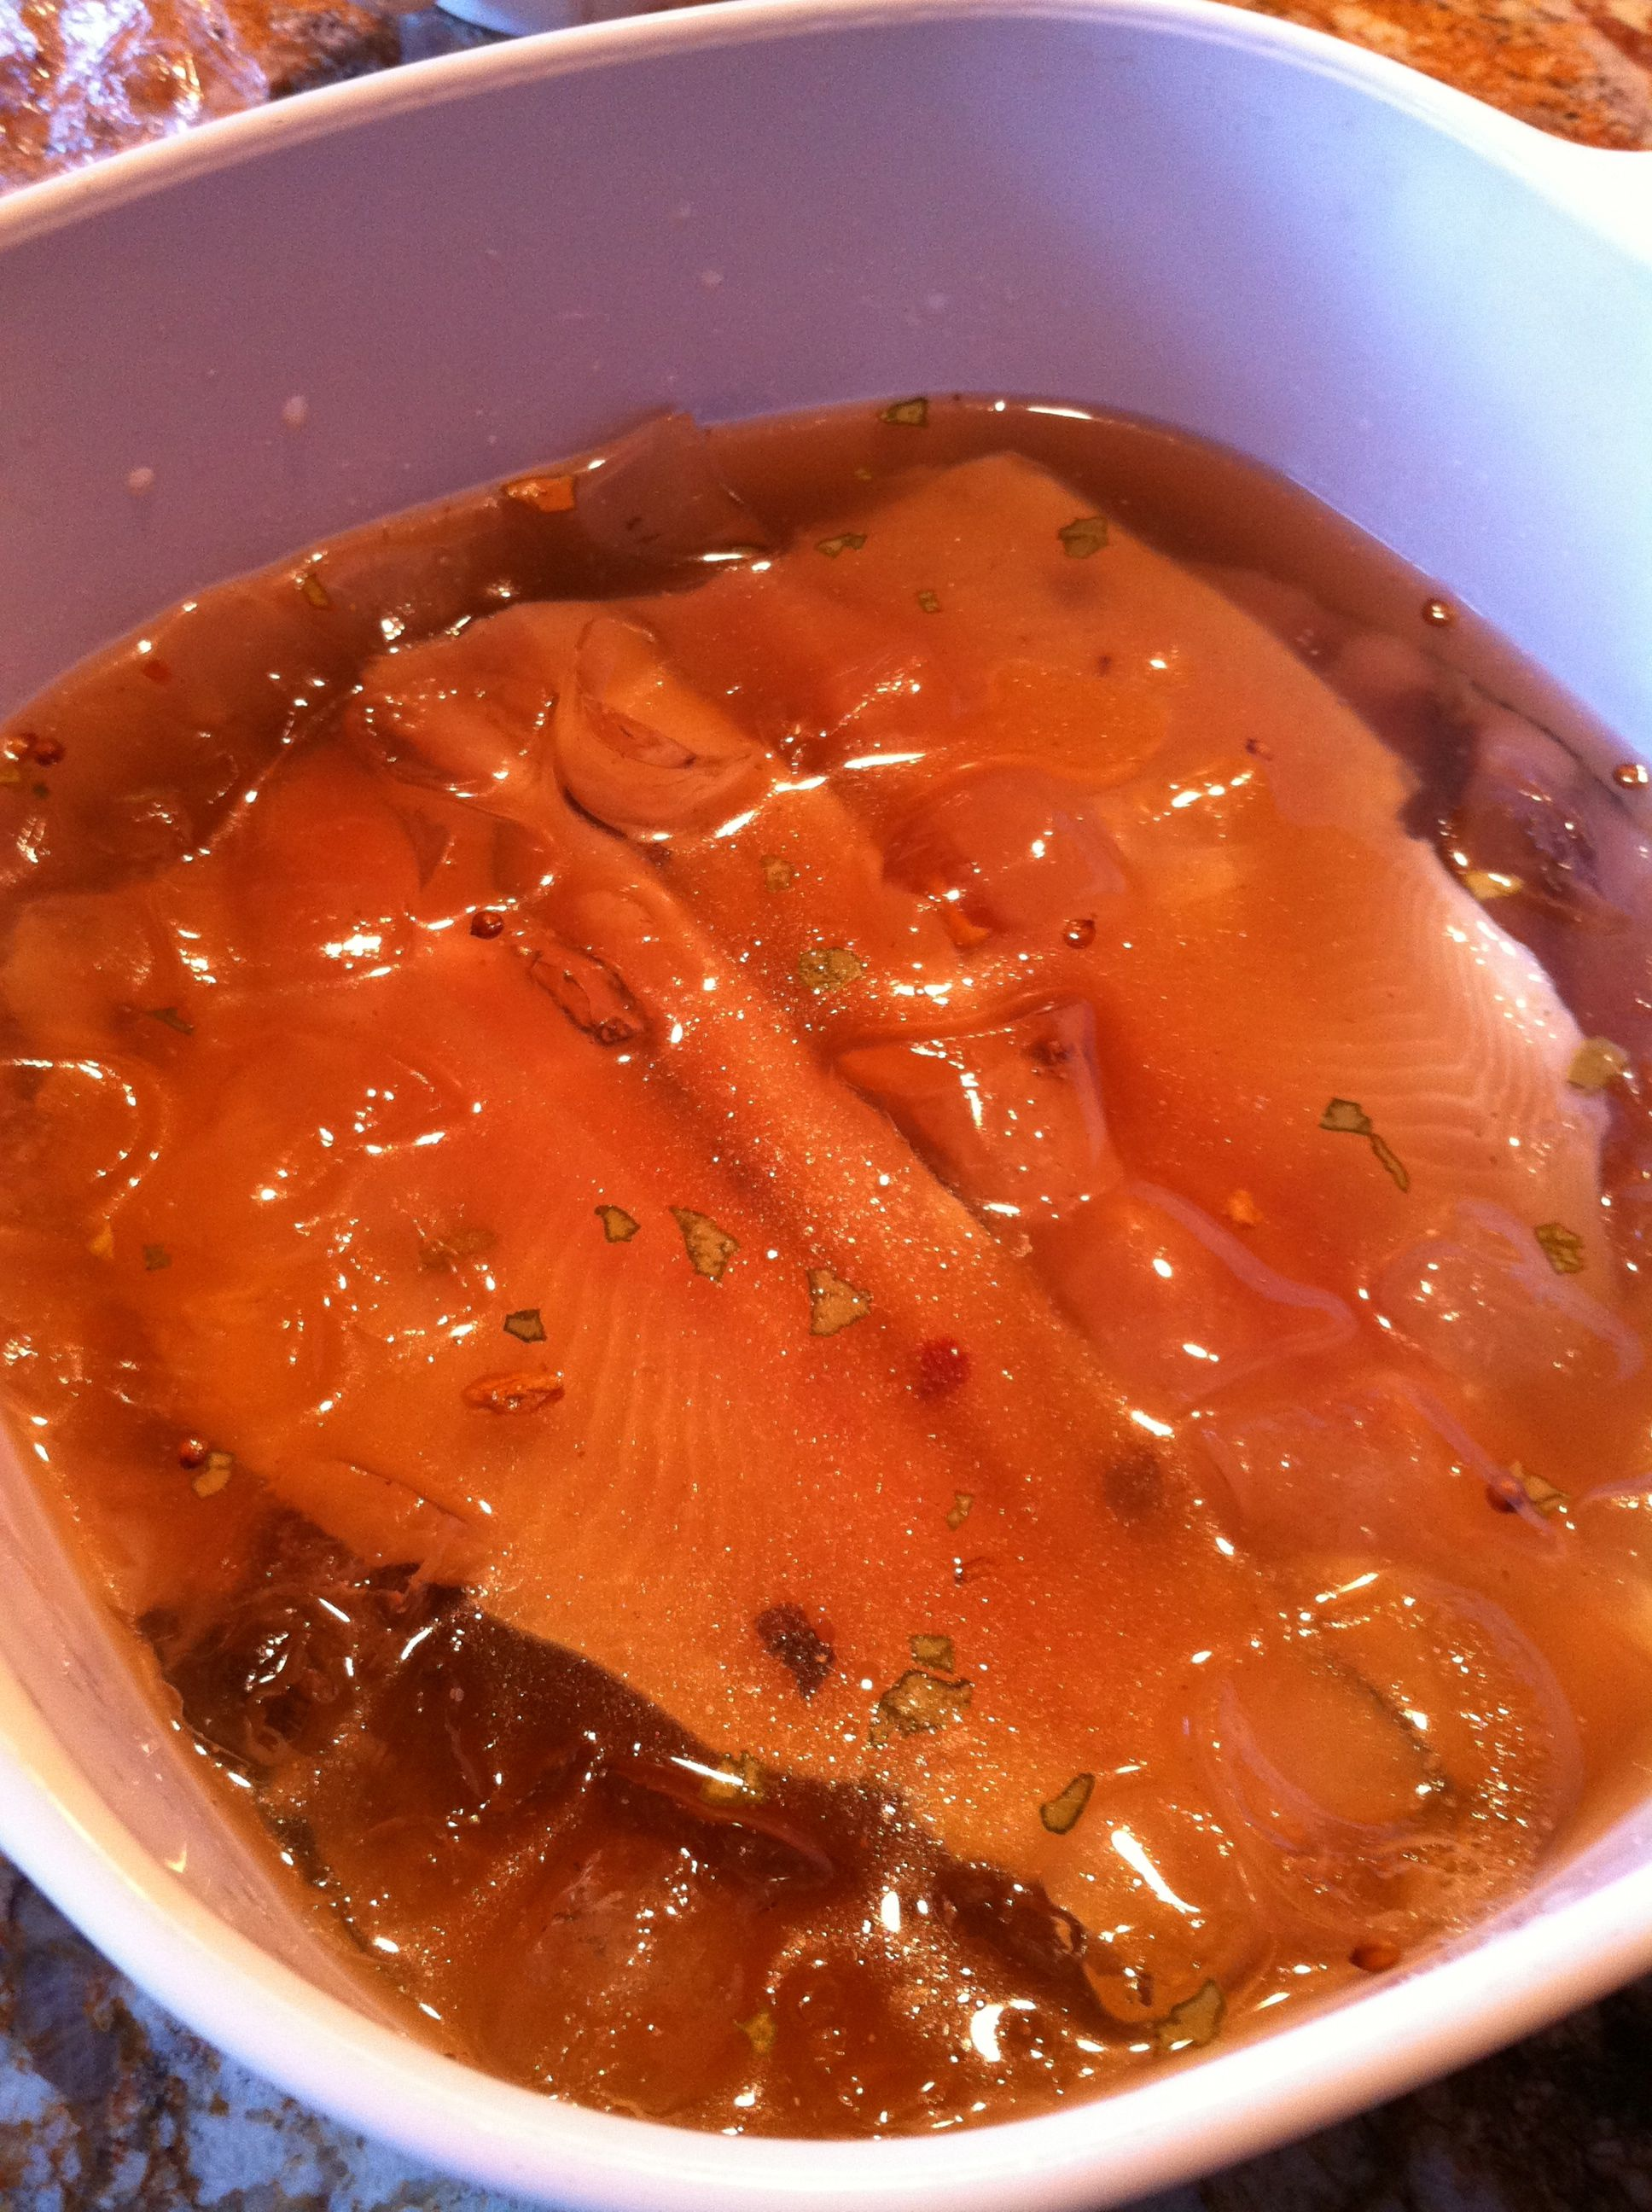 Smoked Trout rests in a flavorful brine for 8-12 hours, with a little bit of sweet